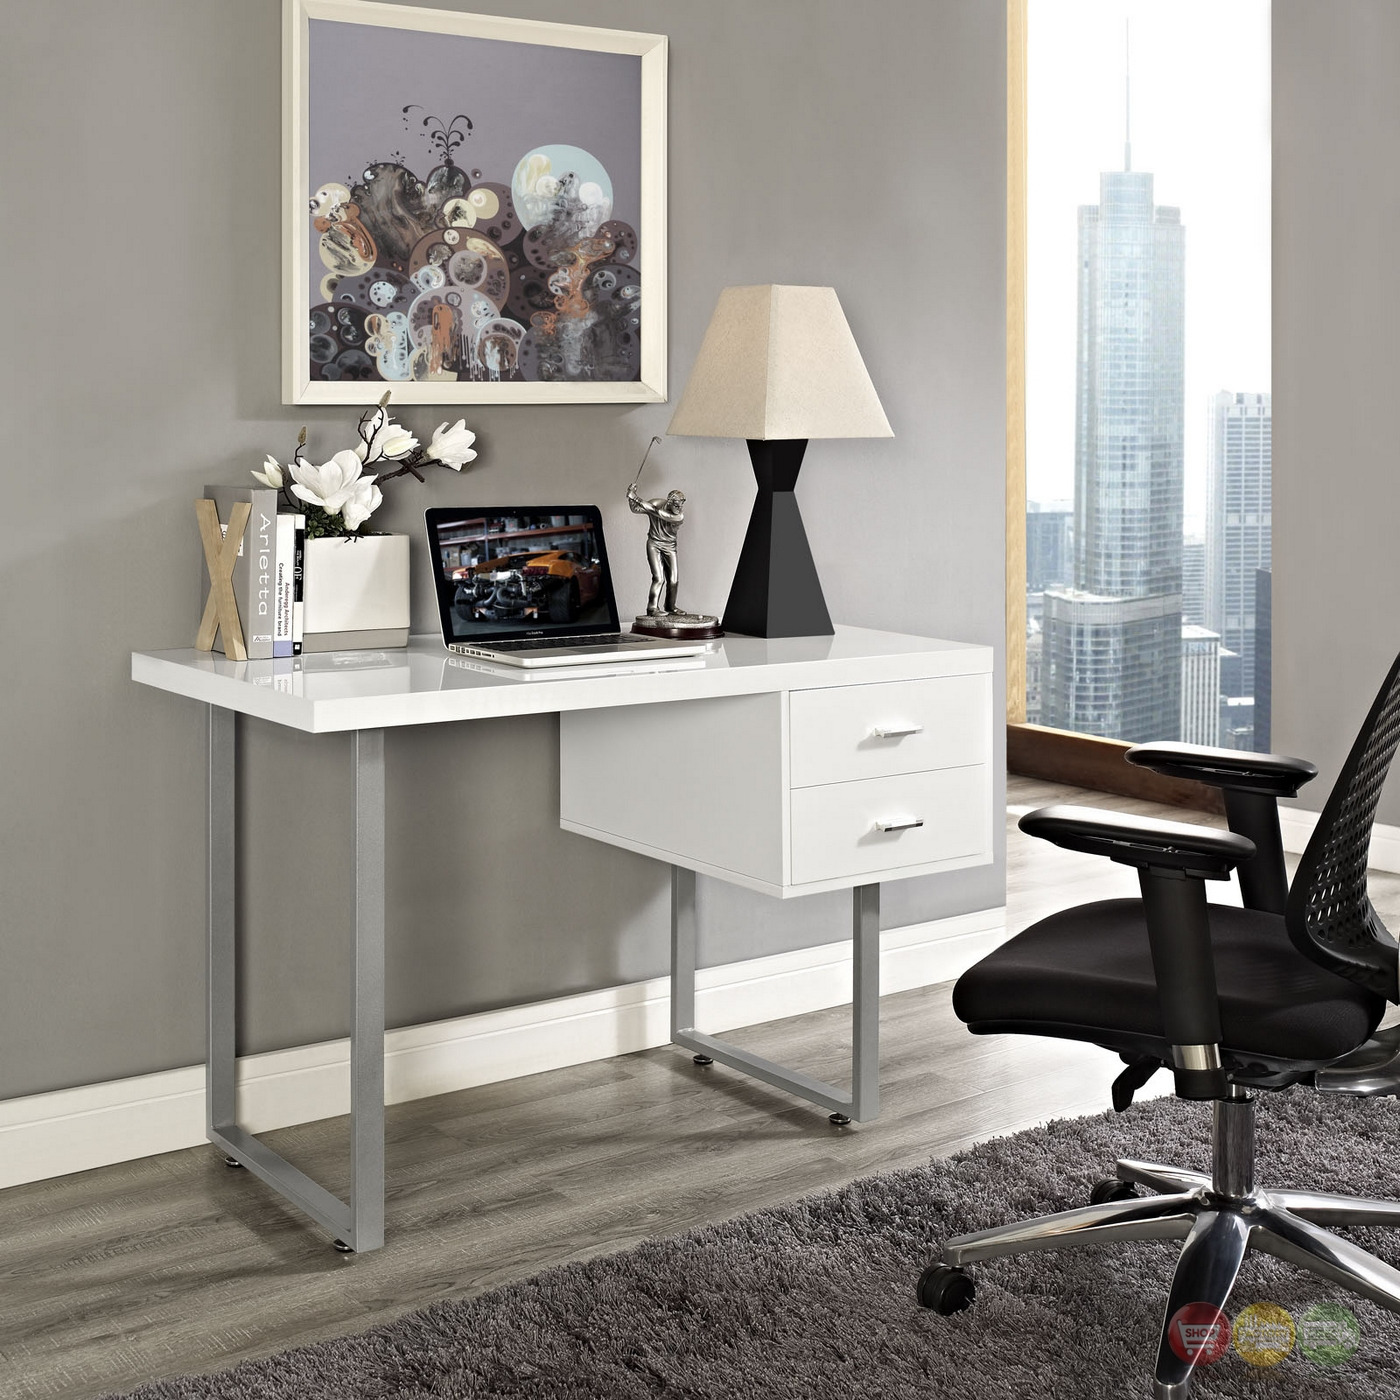 Turn Contemporary 2-drawer Office Desk With High Gloss